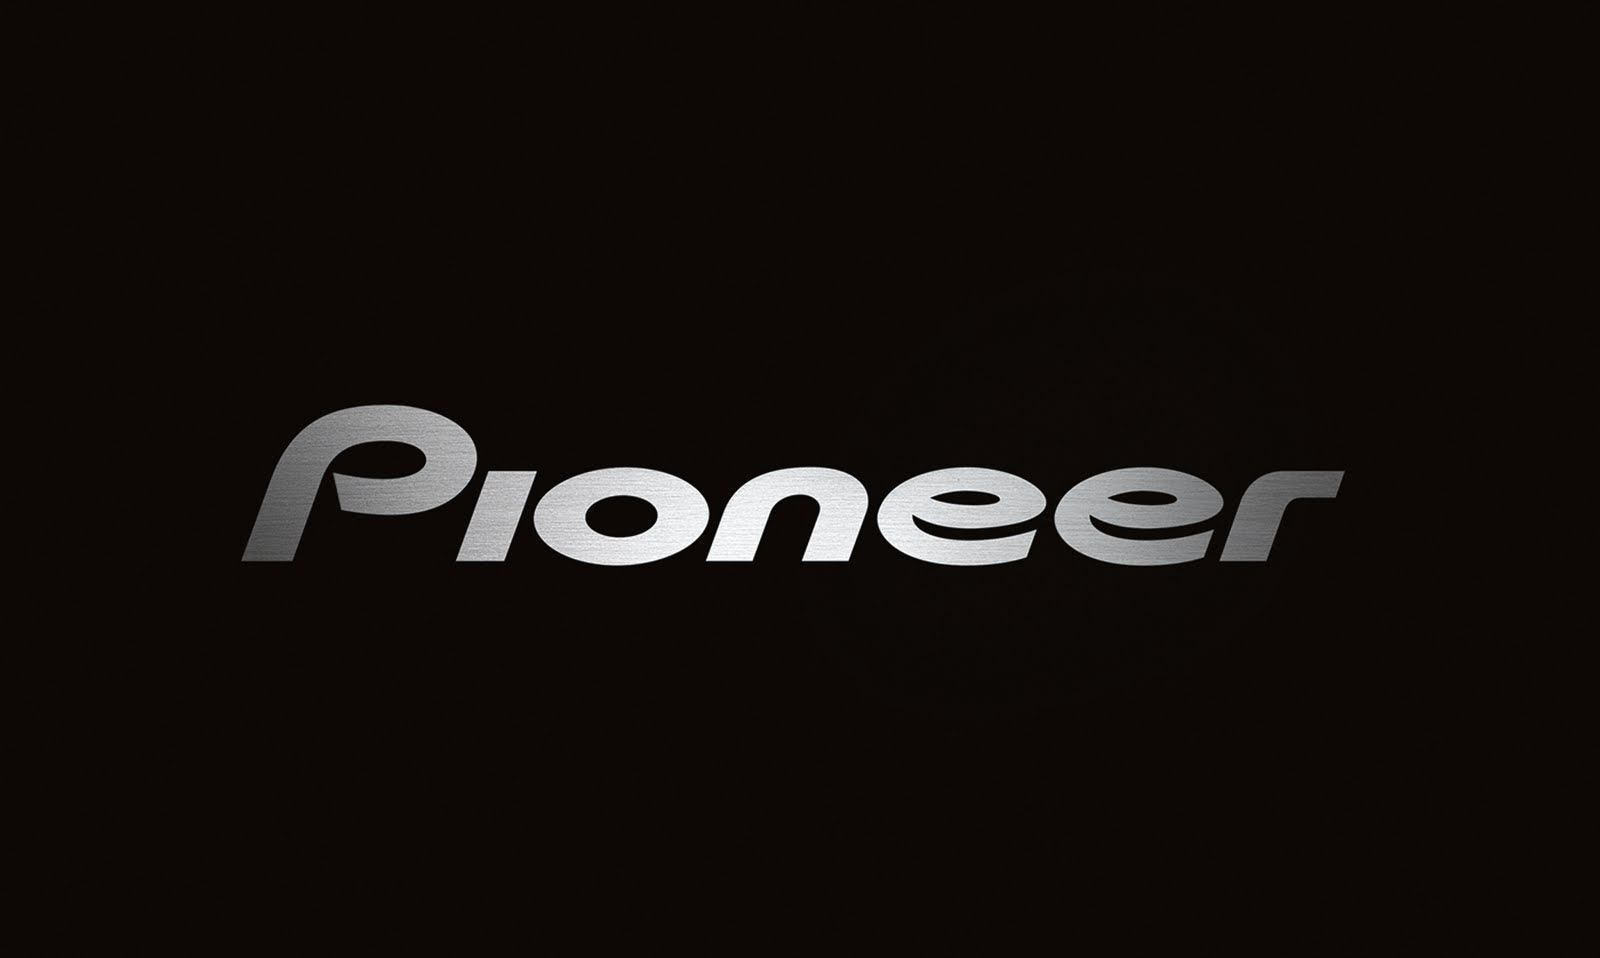 pioneer logo hd wallpaper widescreen